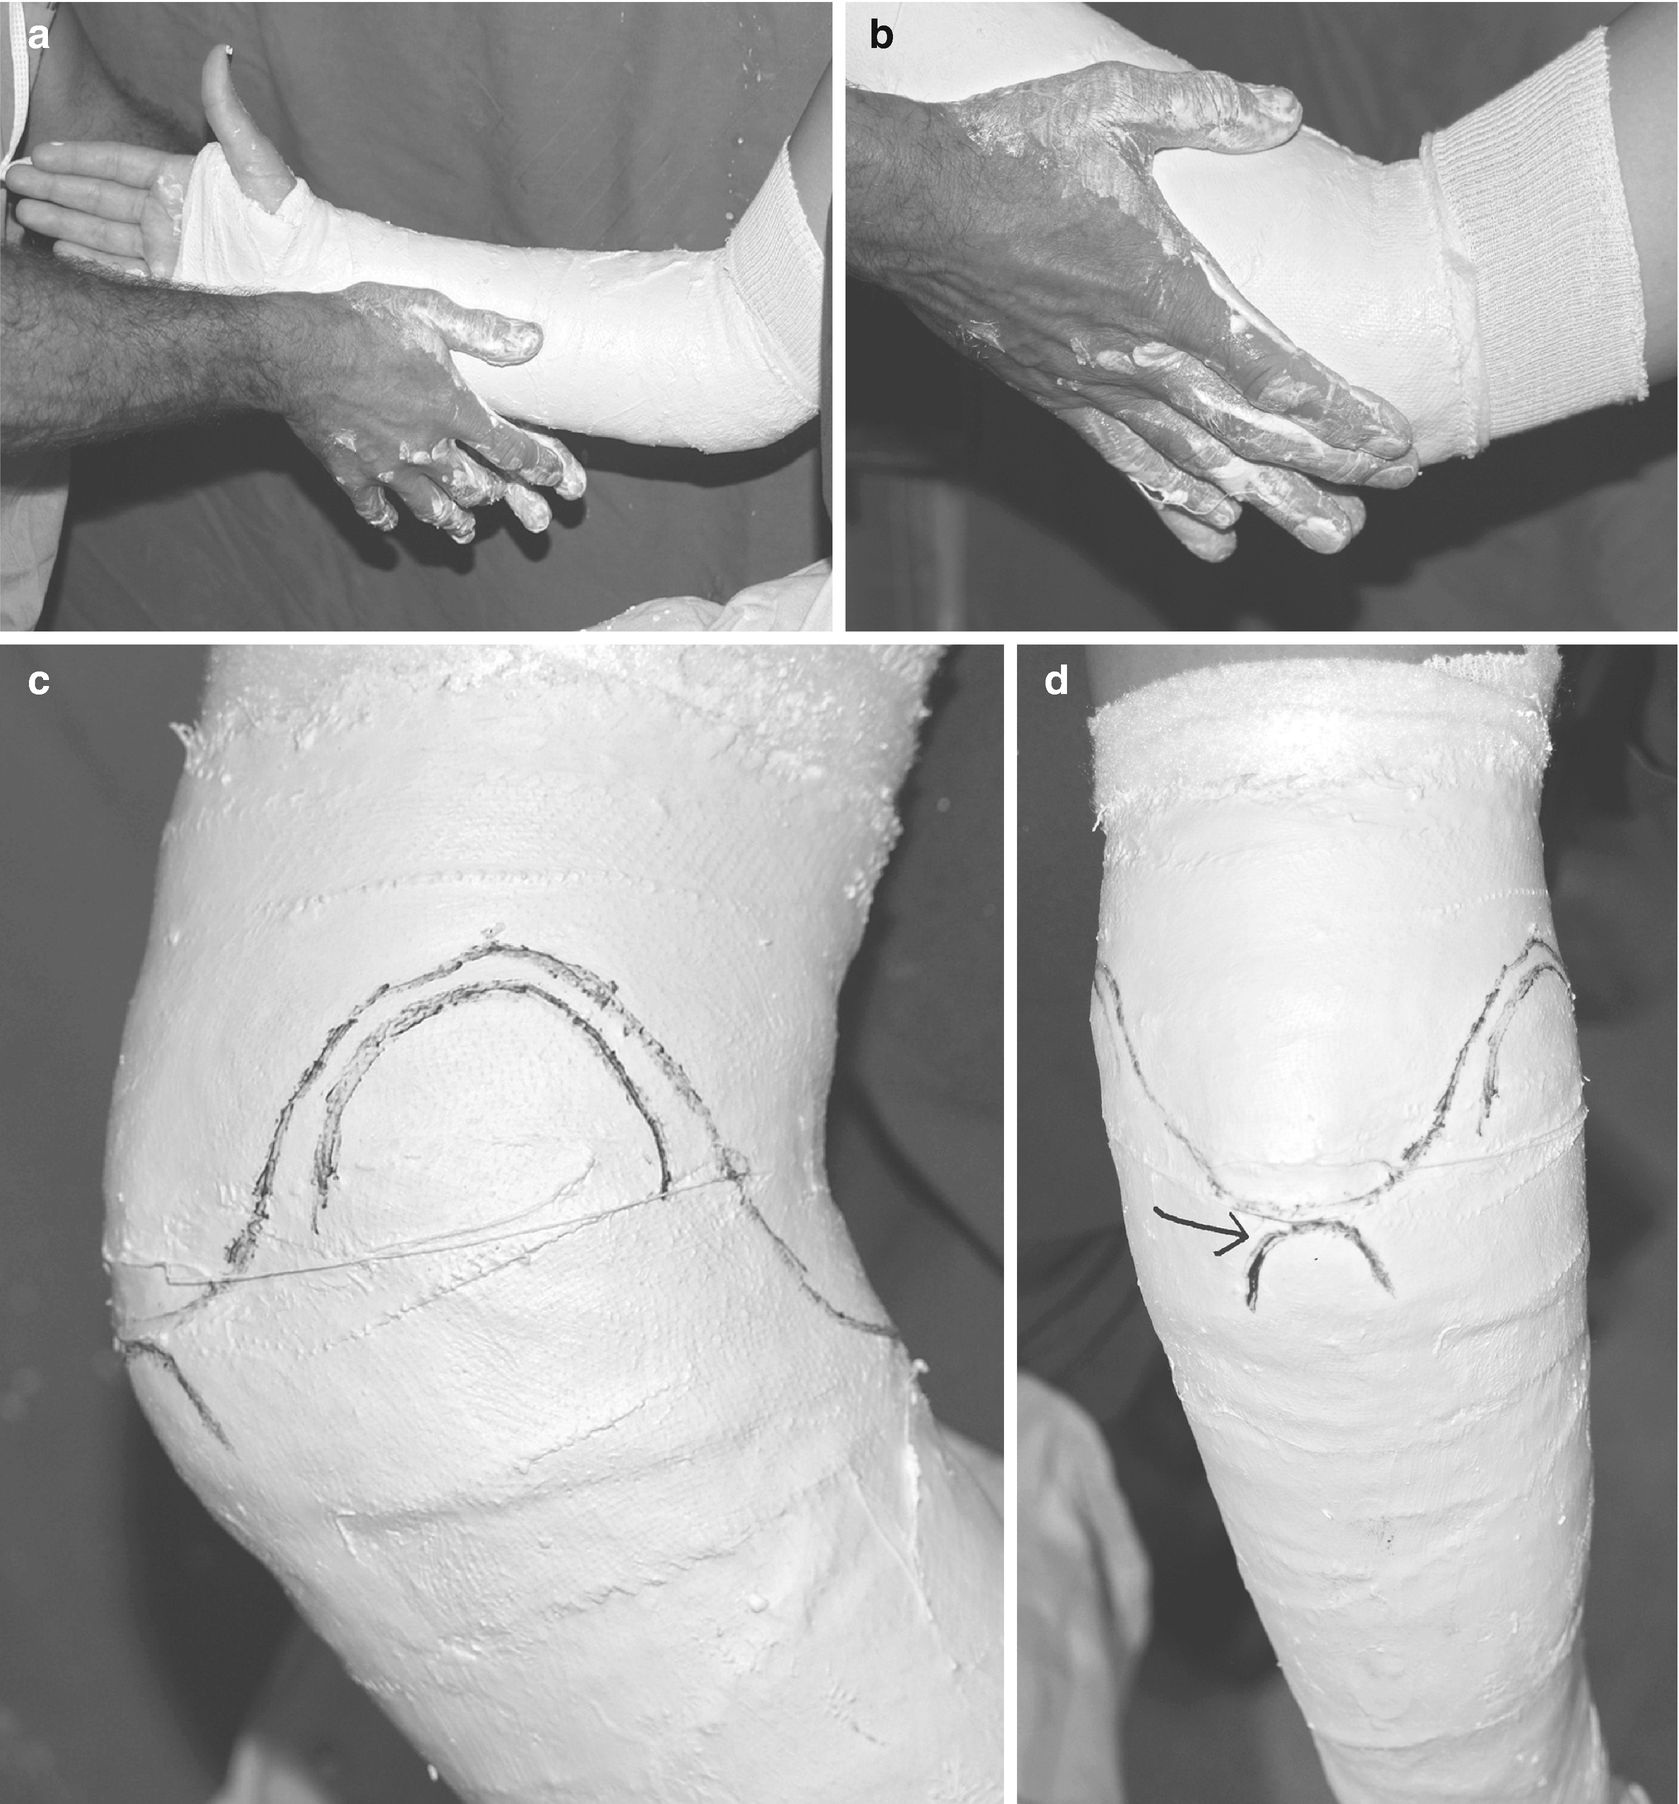 Nonsurgical Principles of Fracture and Injury Management